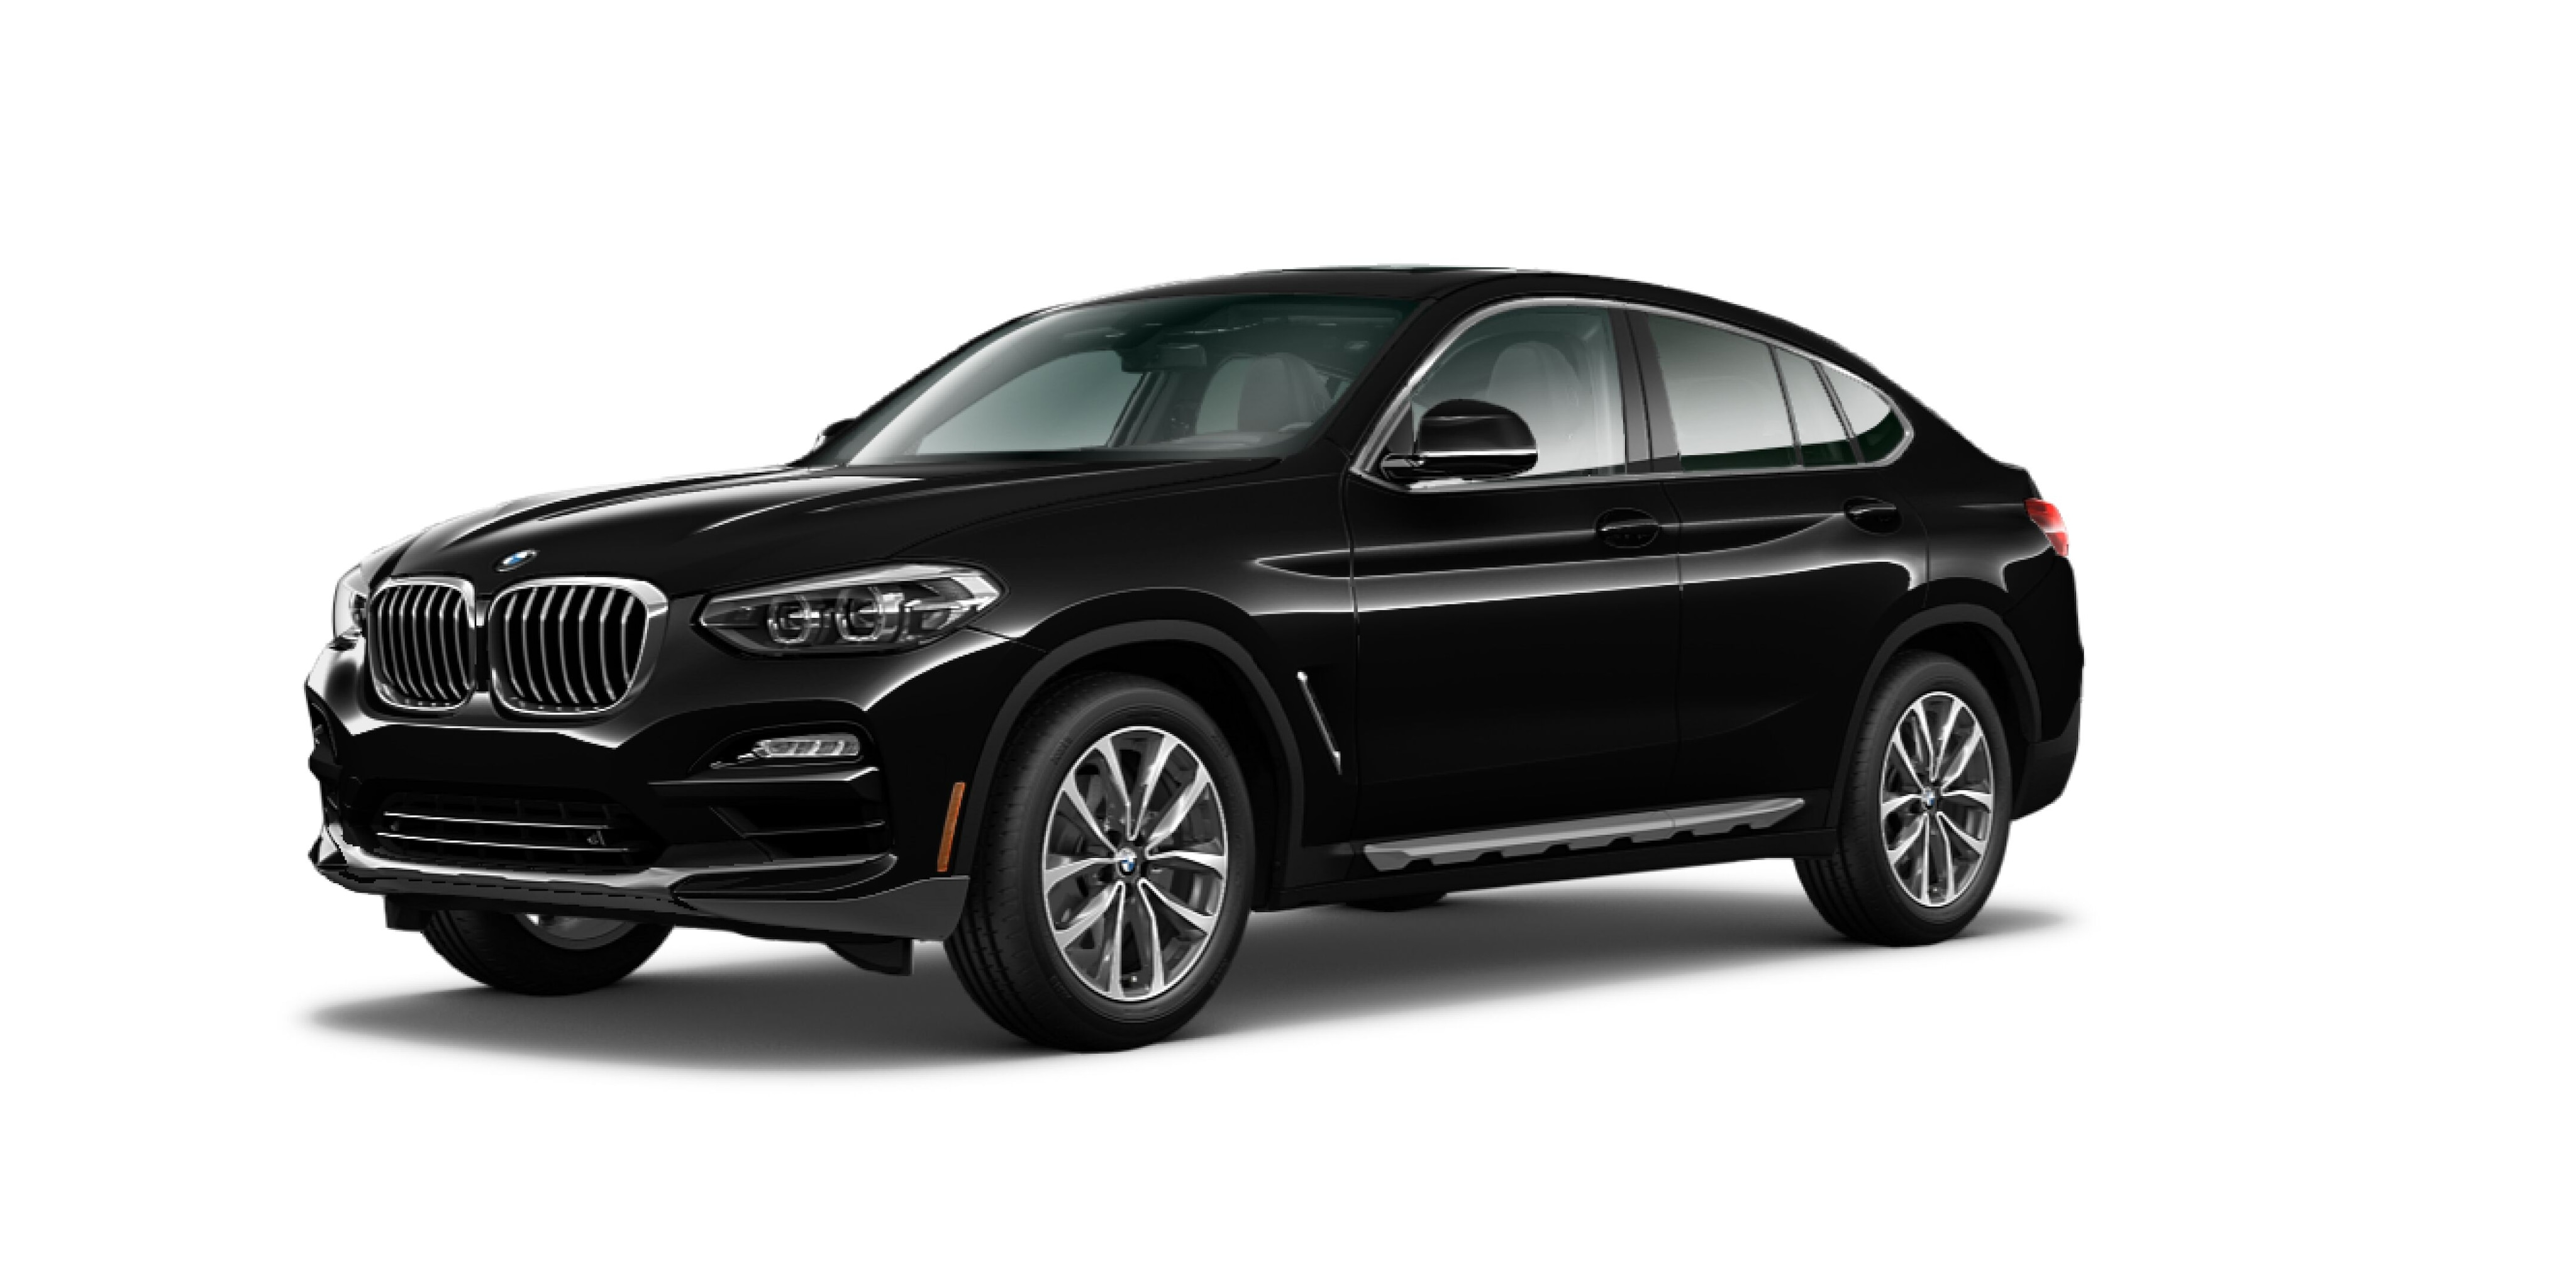 2019 Bmw X4 For Sale In Shelburne Vt The Automaster Bmw